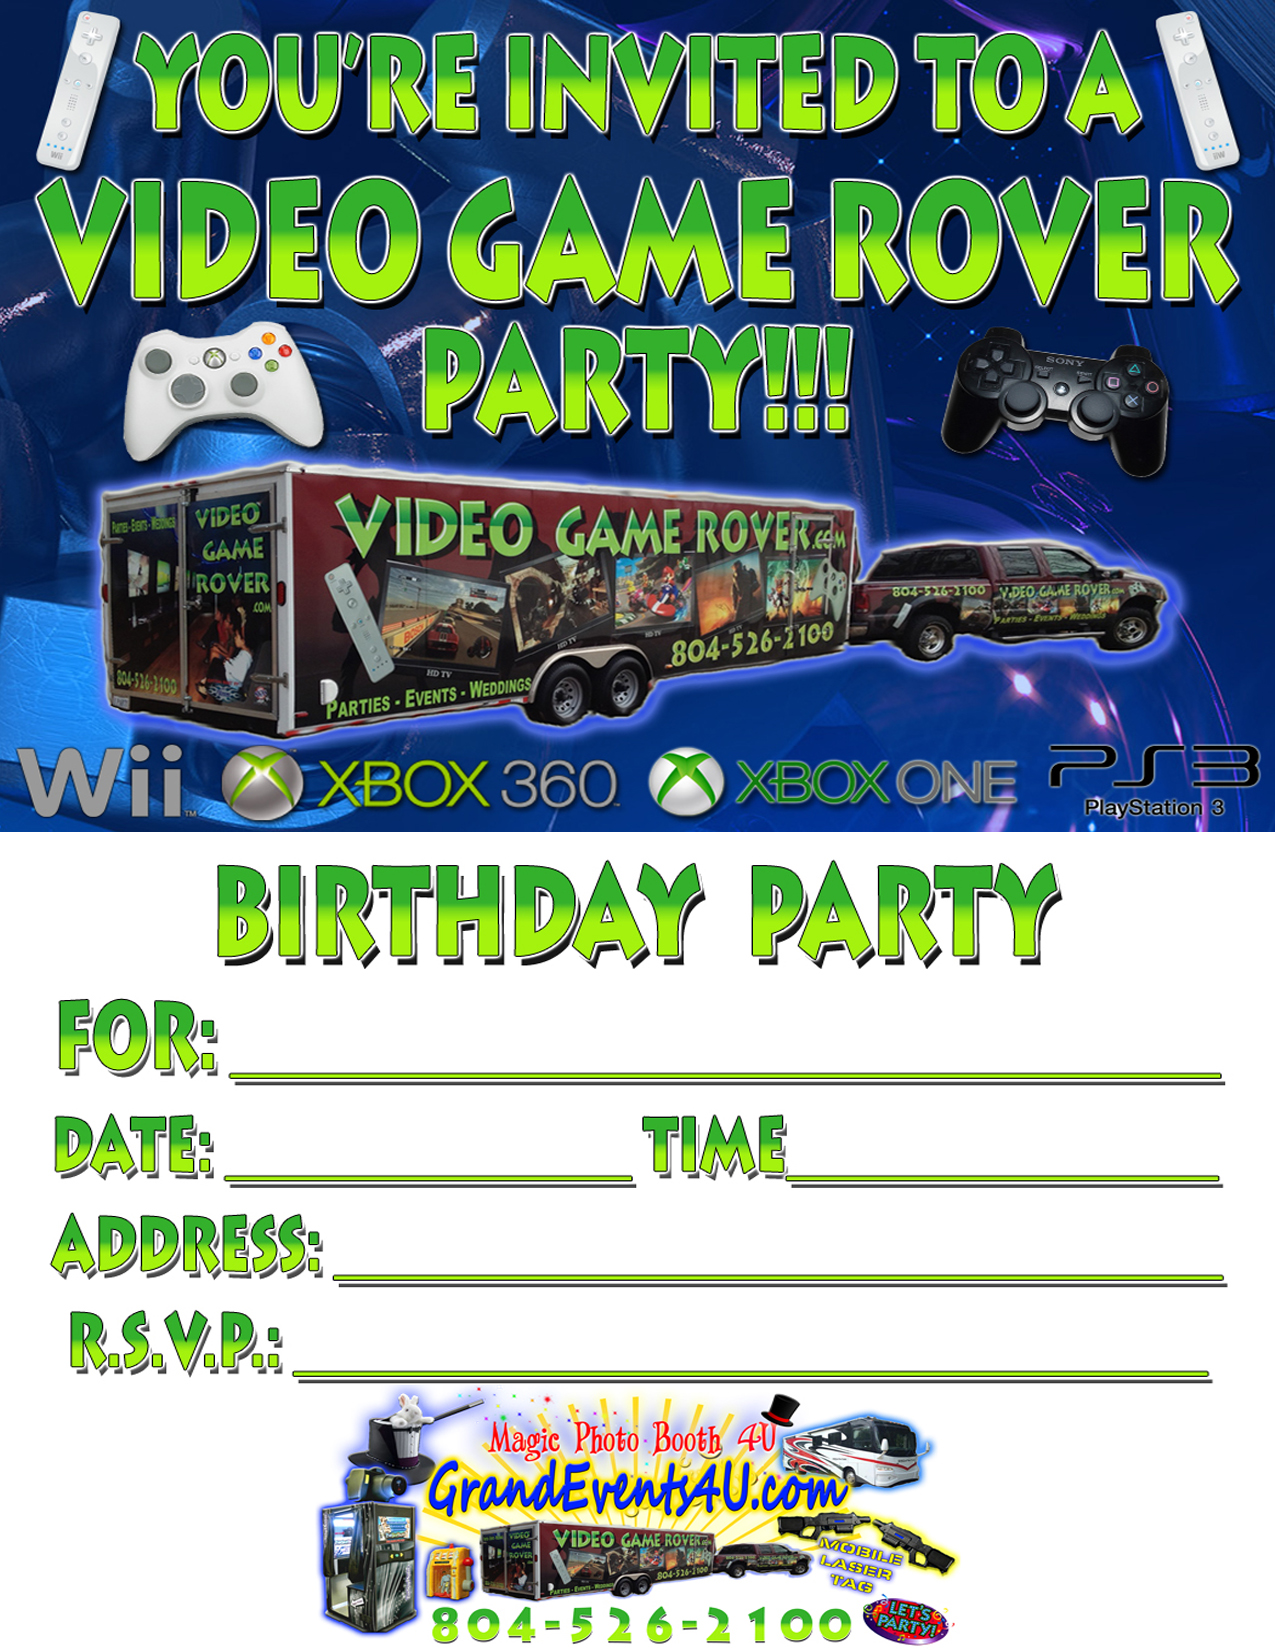 mobile laser tag birthday party ; VideoGameRover_Invitation_Onesided2